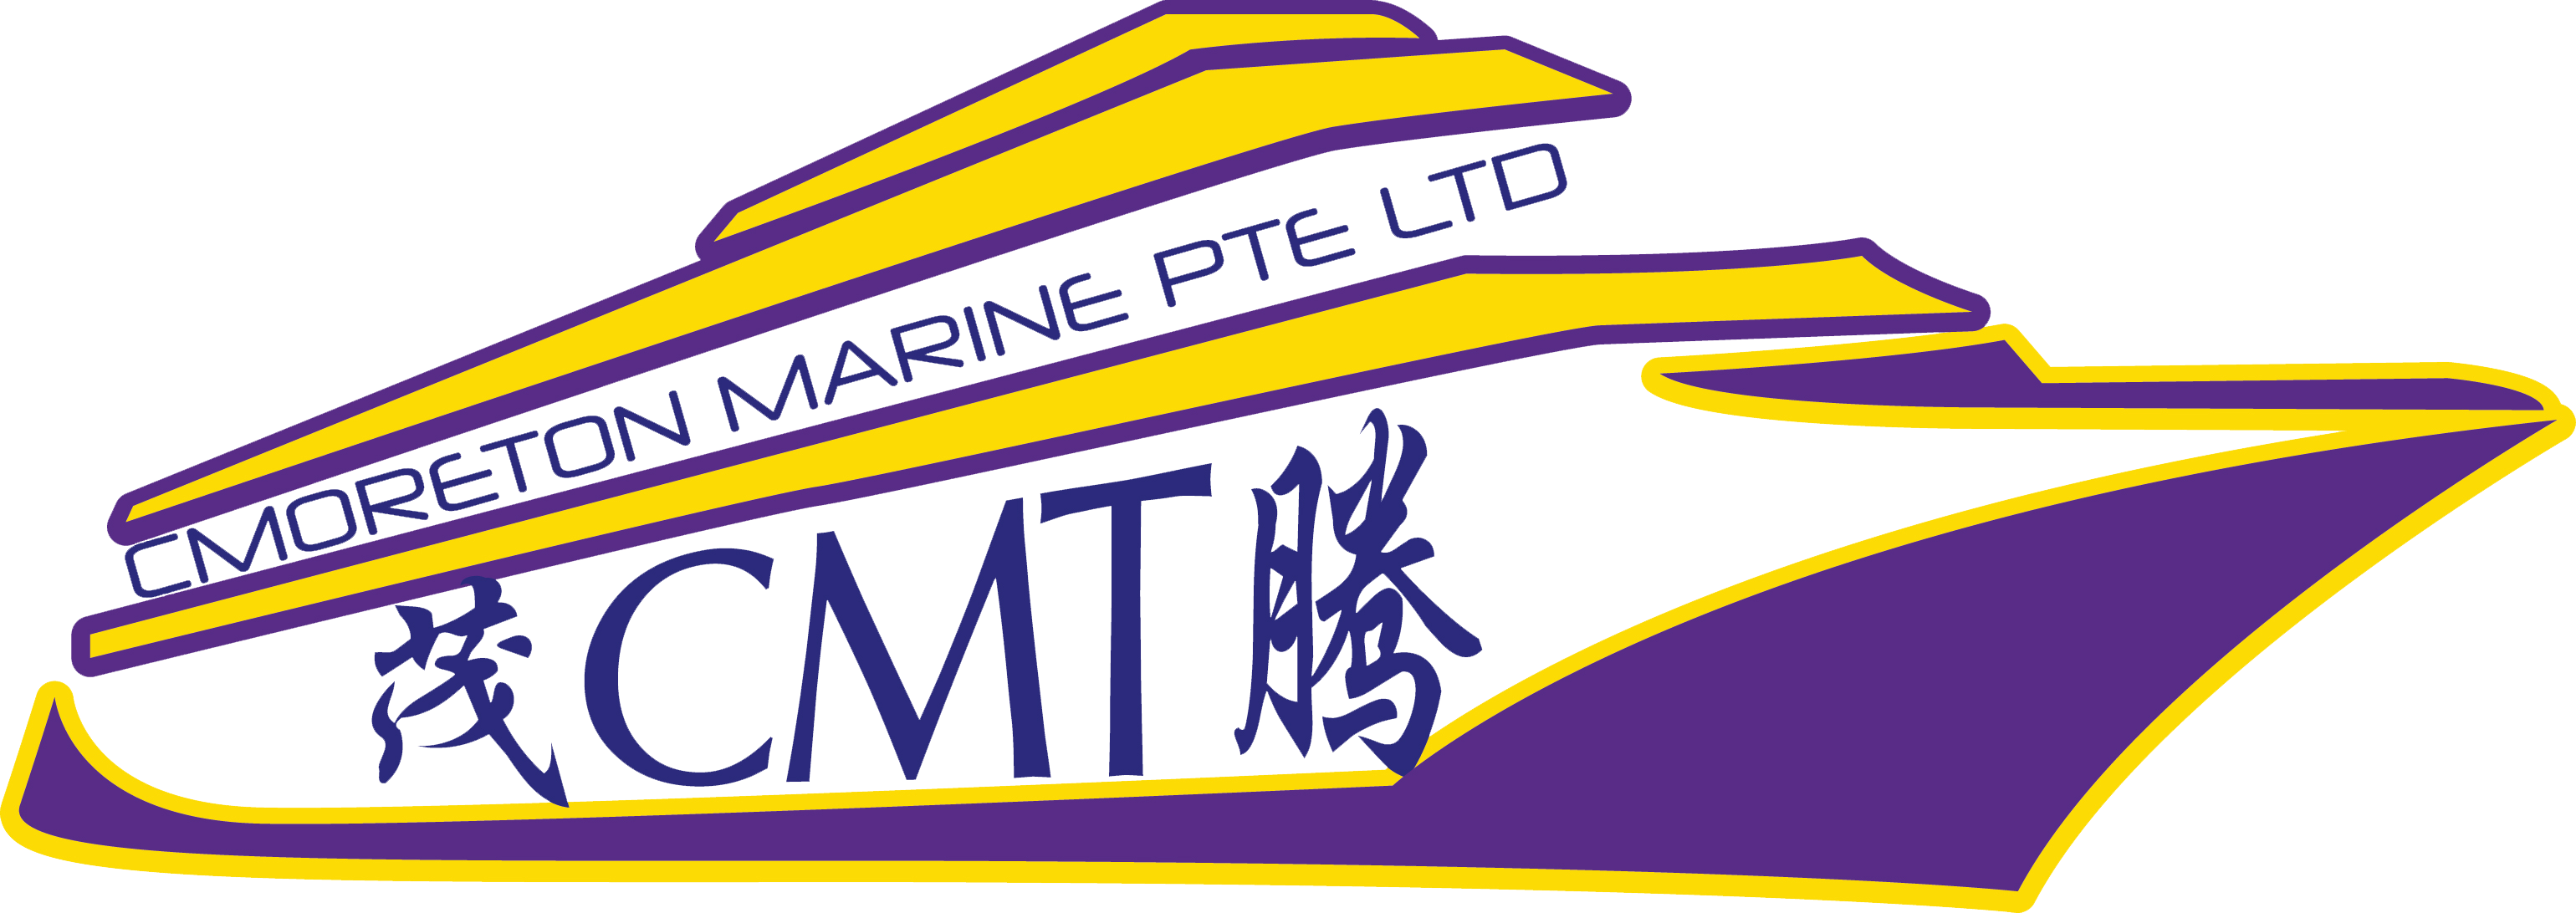 Ship repair cmoreton pte. Welding clipart marine engineer